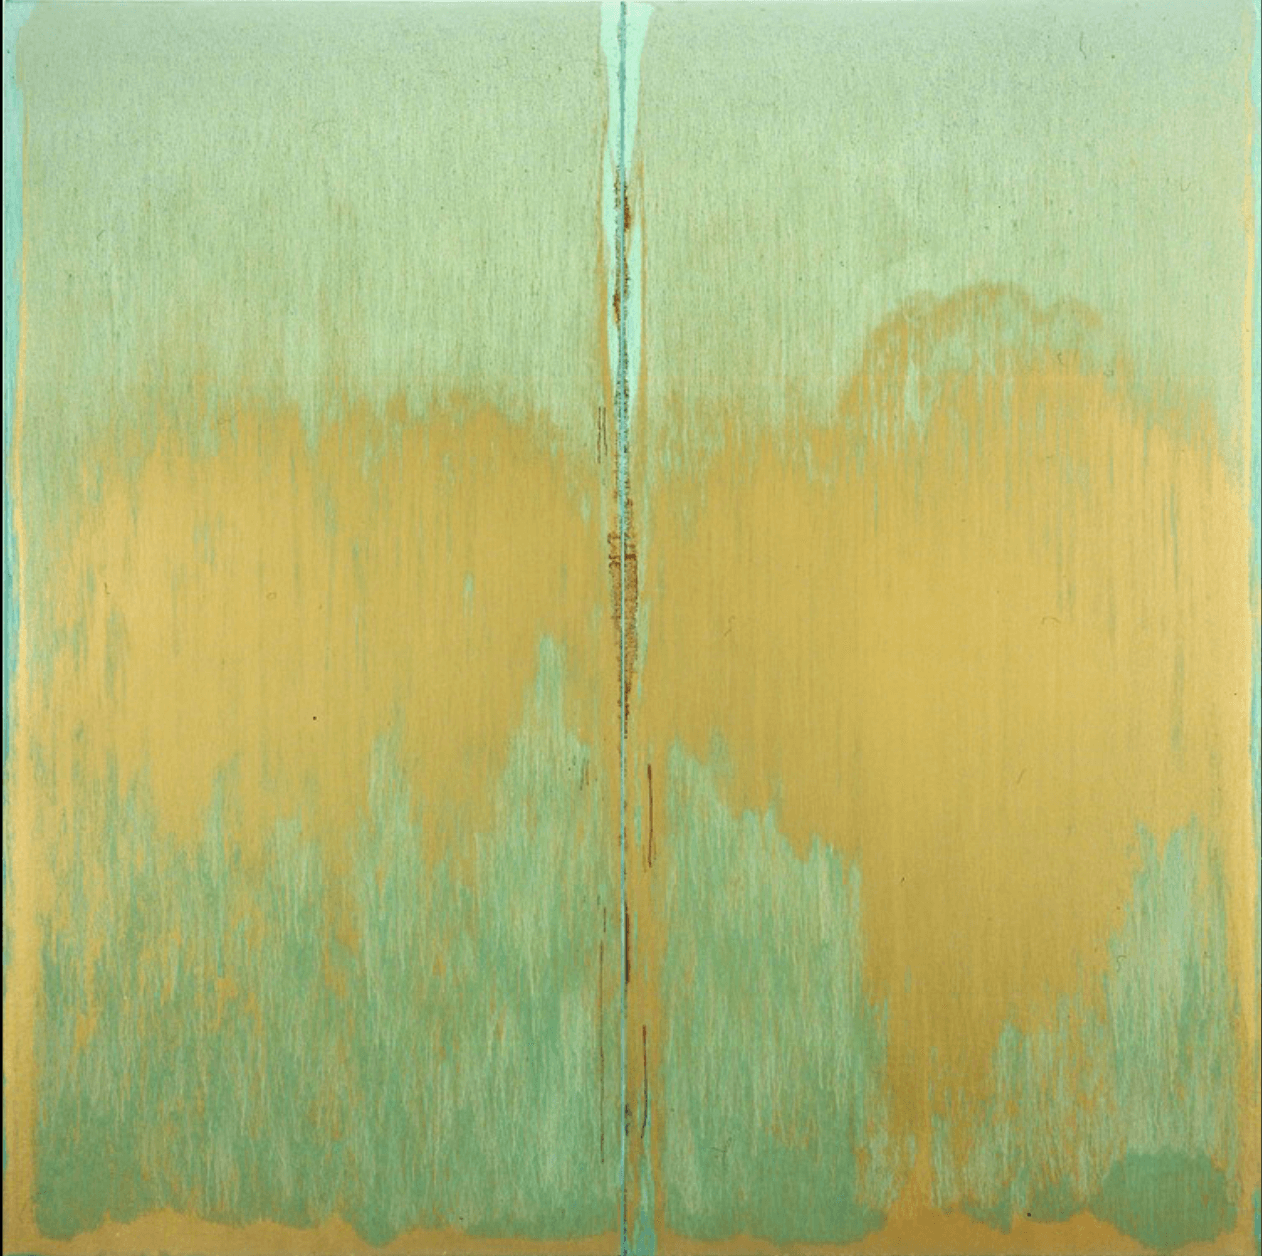 Pat Steir, Green Abyss, 2006